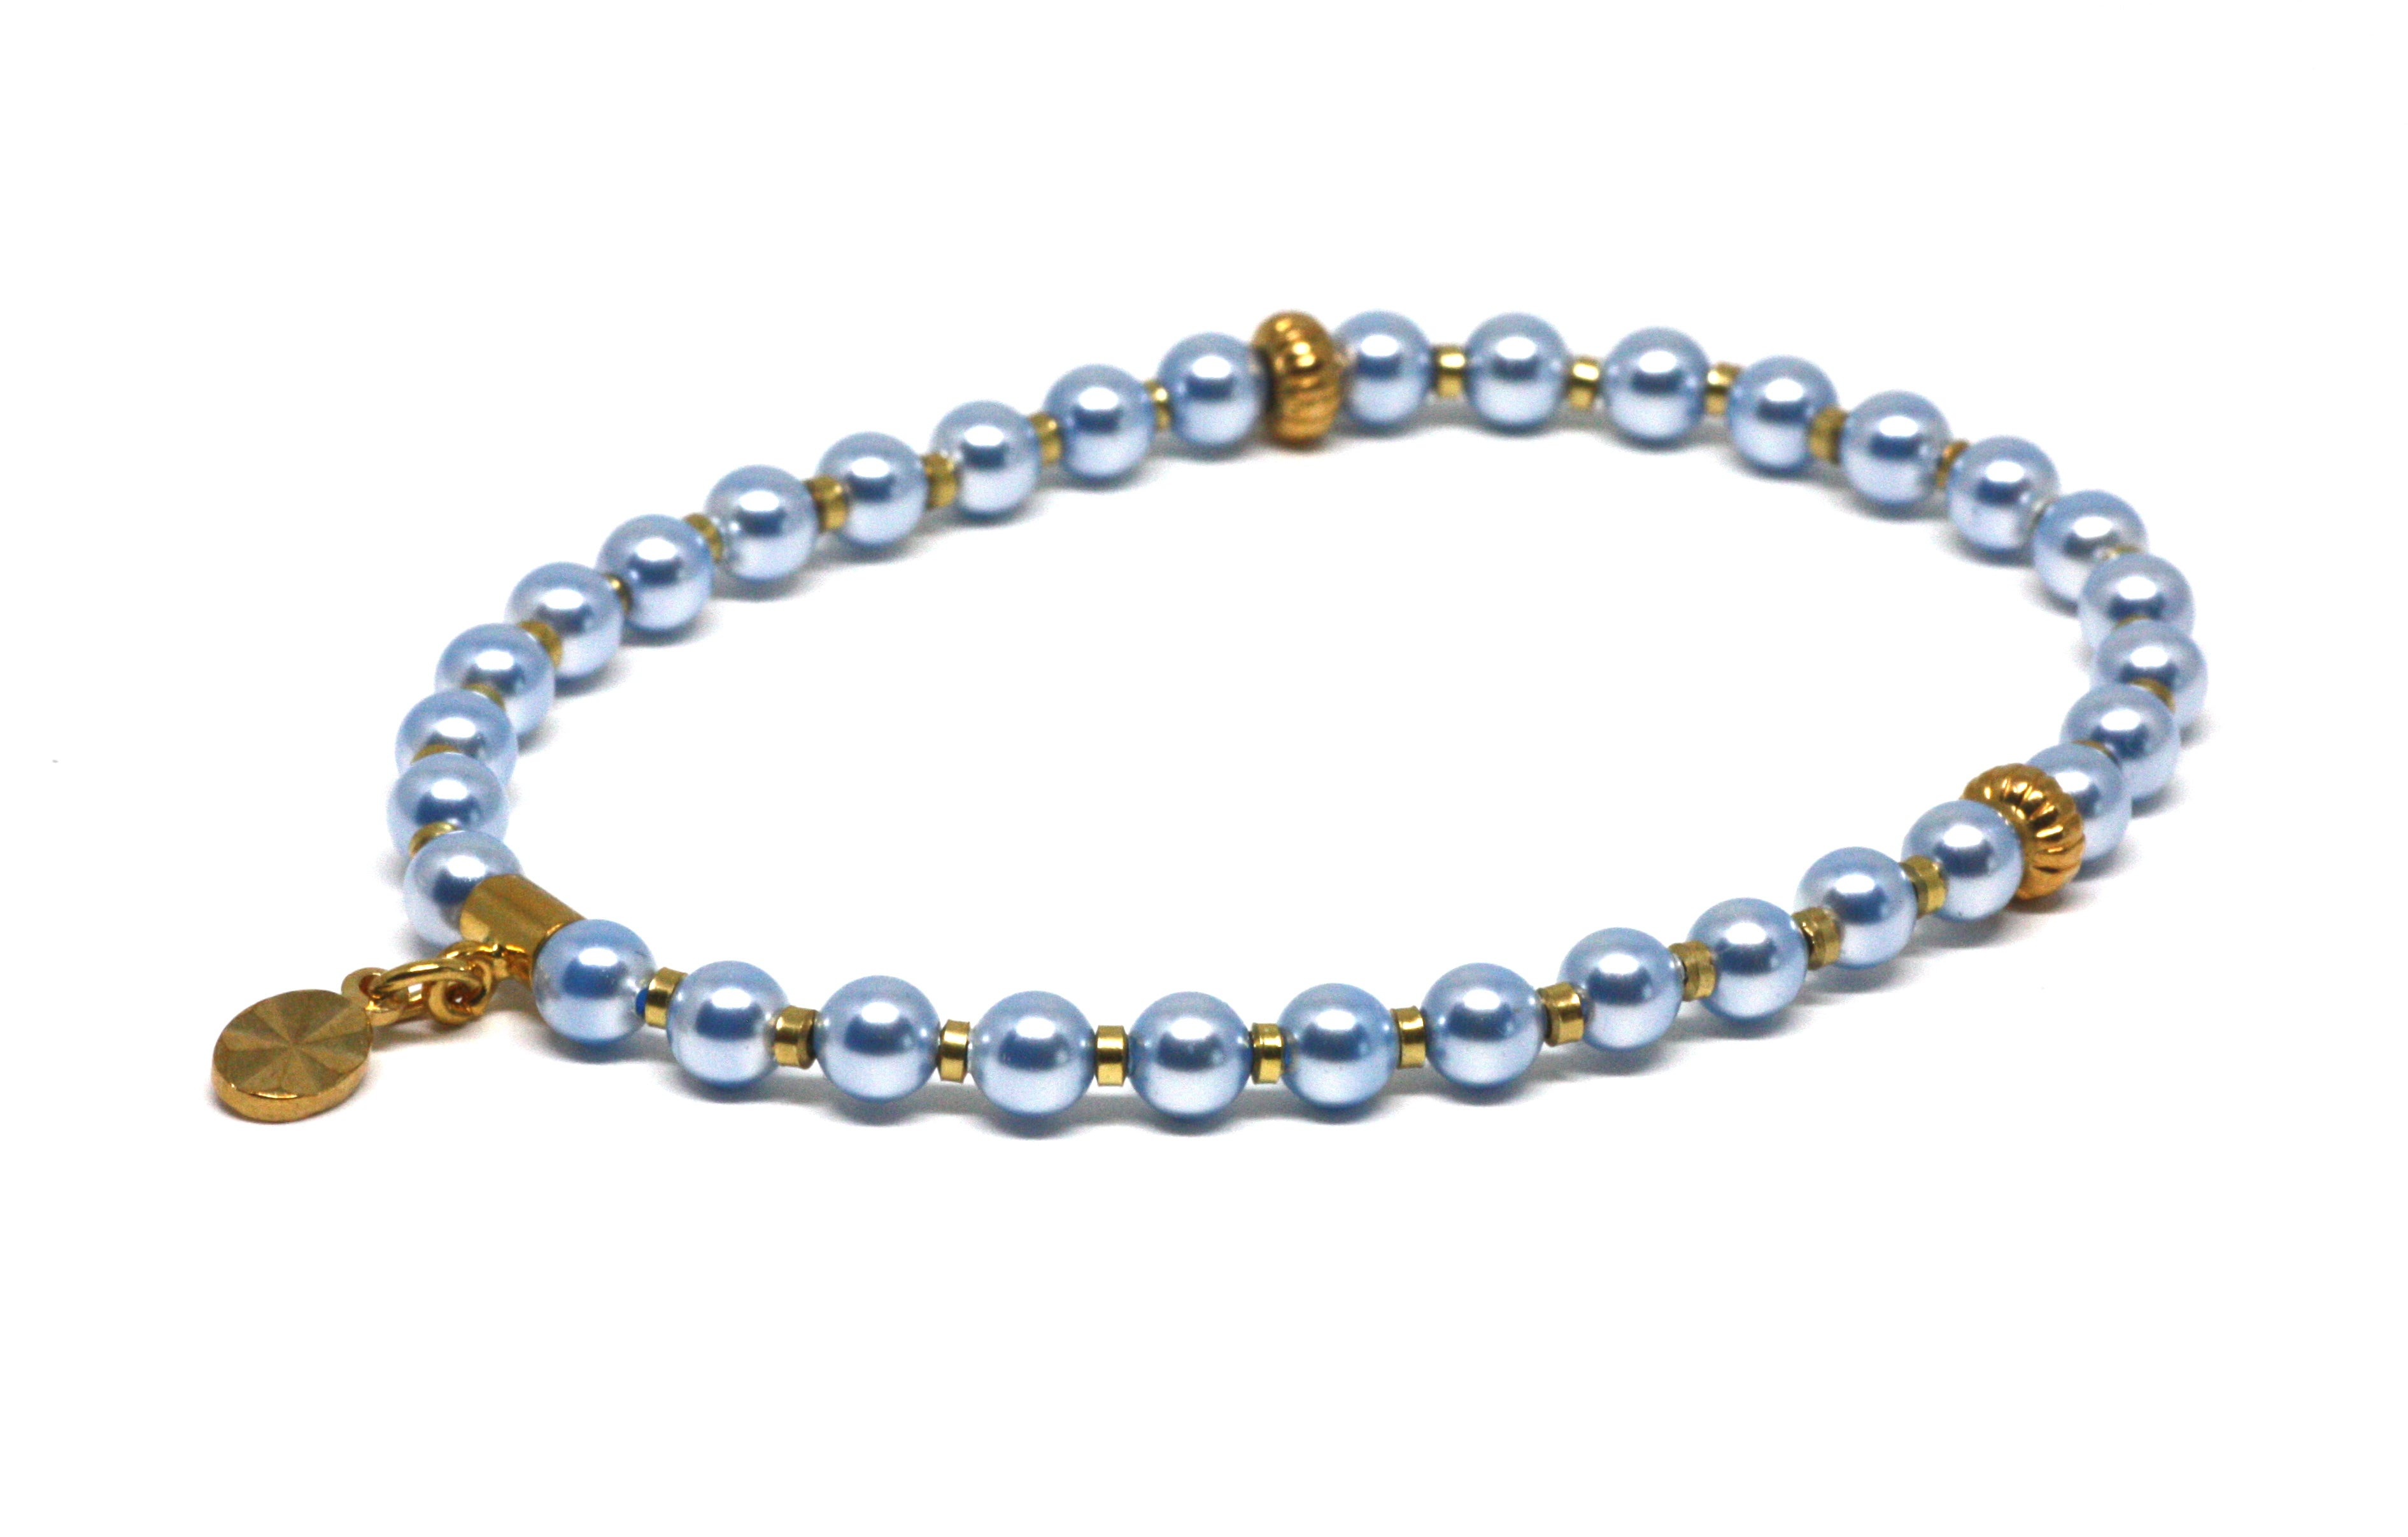 Baby Blue Pearl and Gold Wrist Tasbih